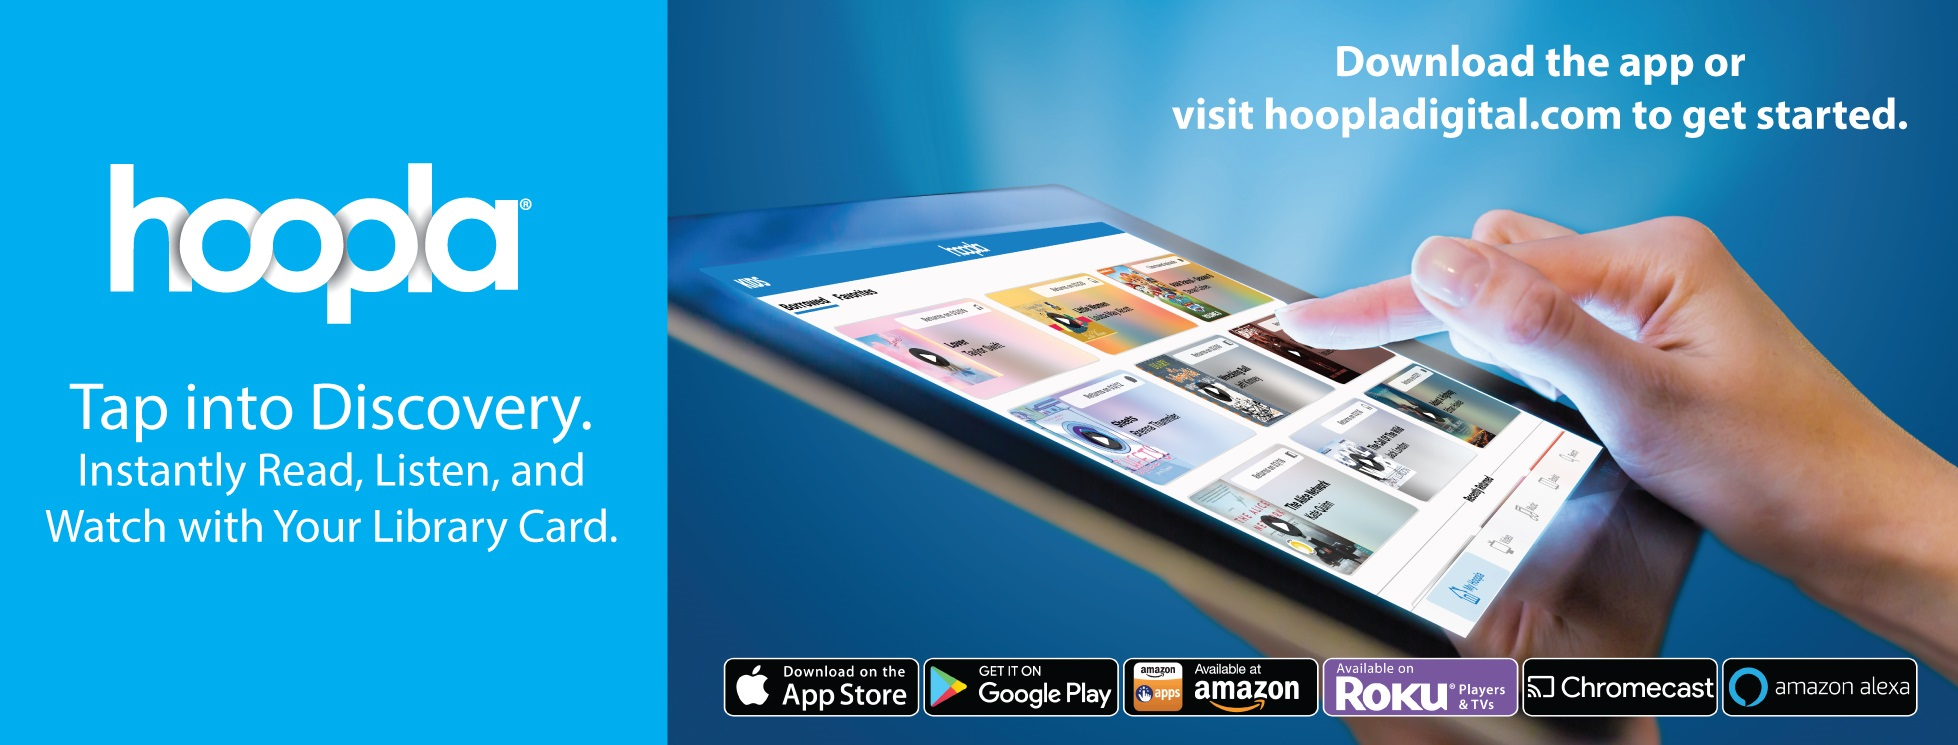 Hoopla. Tap into discovery. Instantly read, listen, and watch with your library card. Download the app or visit hoopladigital.com to get started.